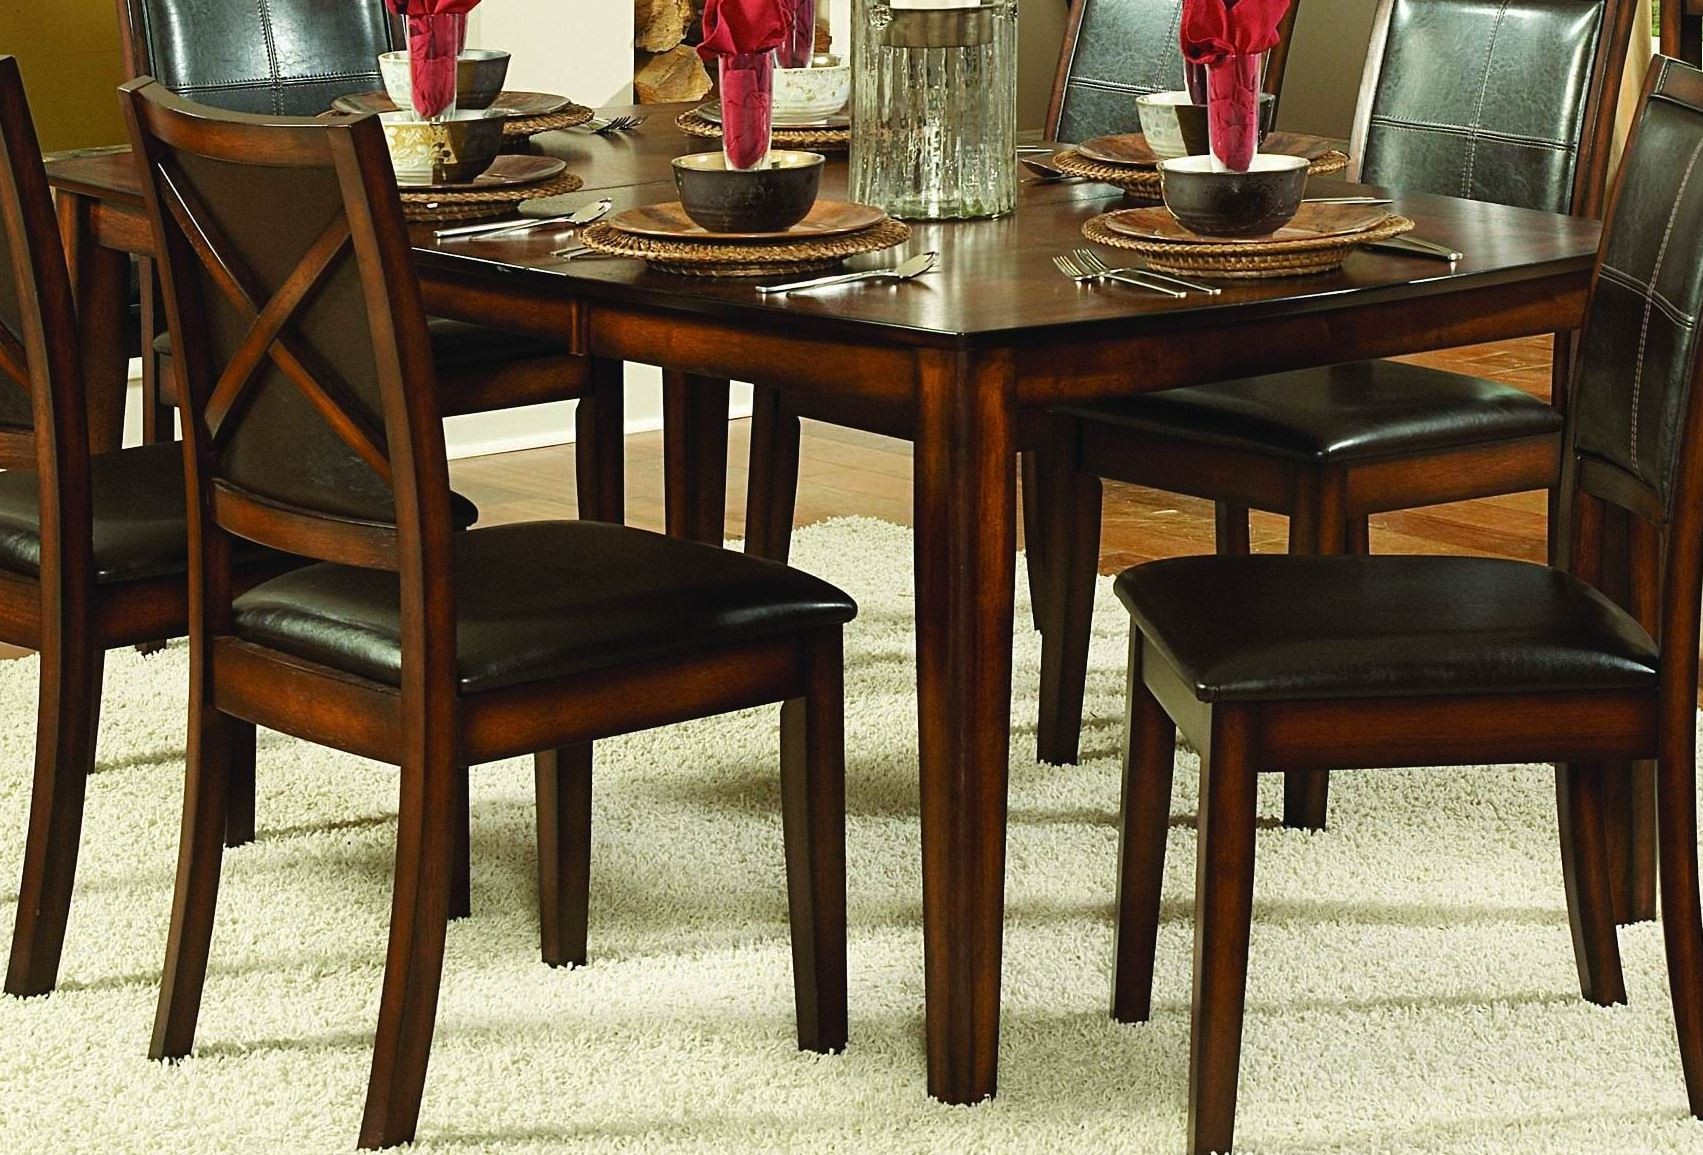 Verona Extendable Dining Table from Homelegance 727 72  : 727 7211 from colemanfurniture.com size 1703 x 1155 jpeg 511kB